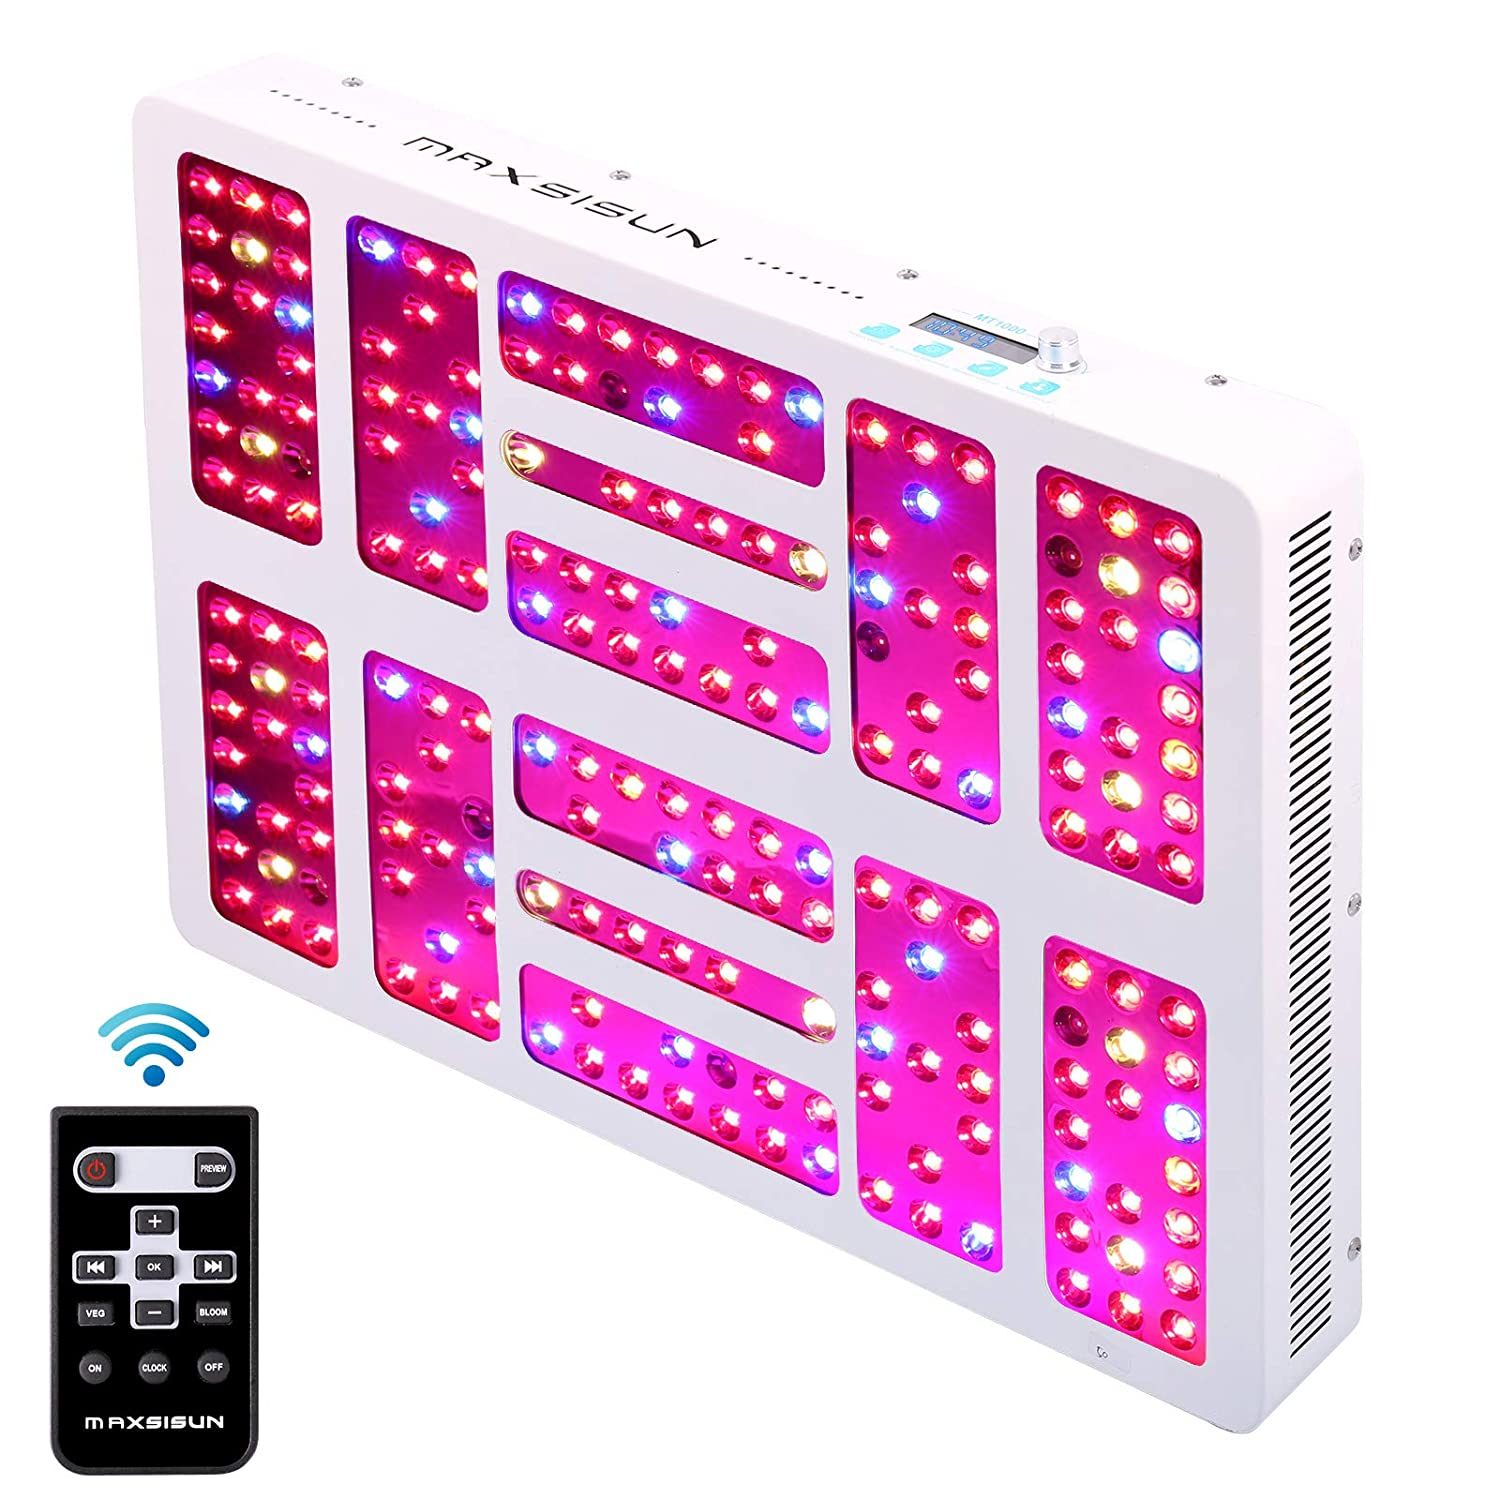 MAXSISUN timer control 1000w LED grow light